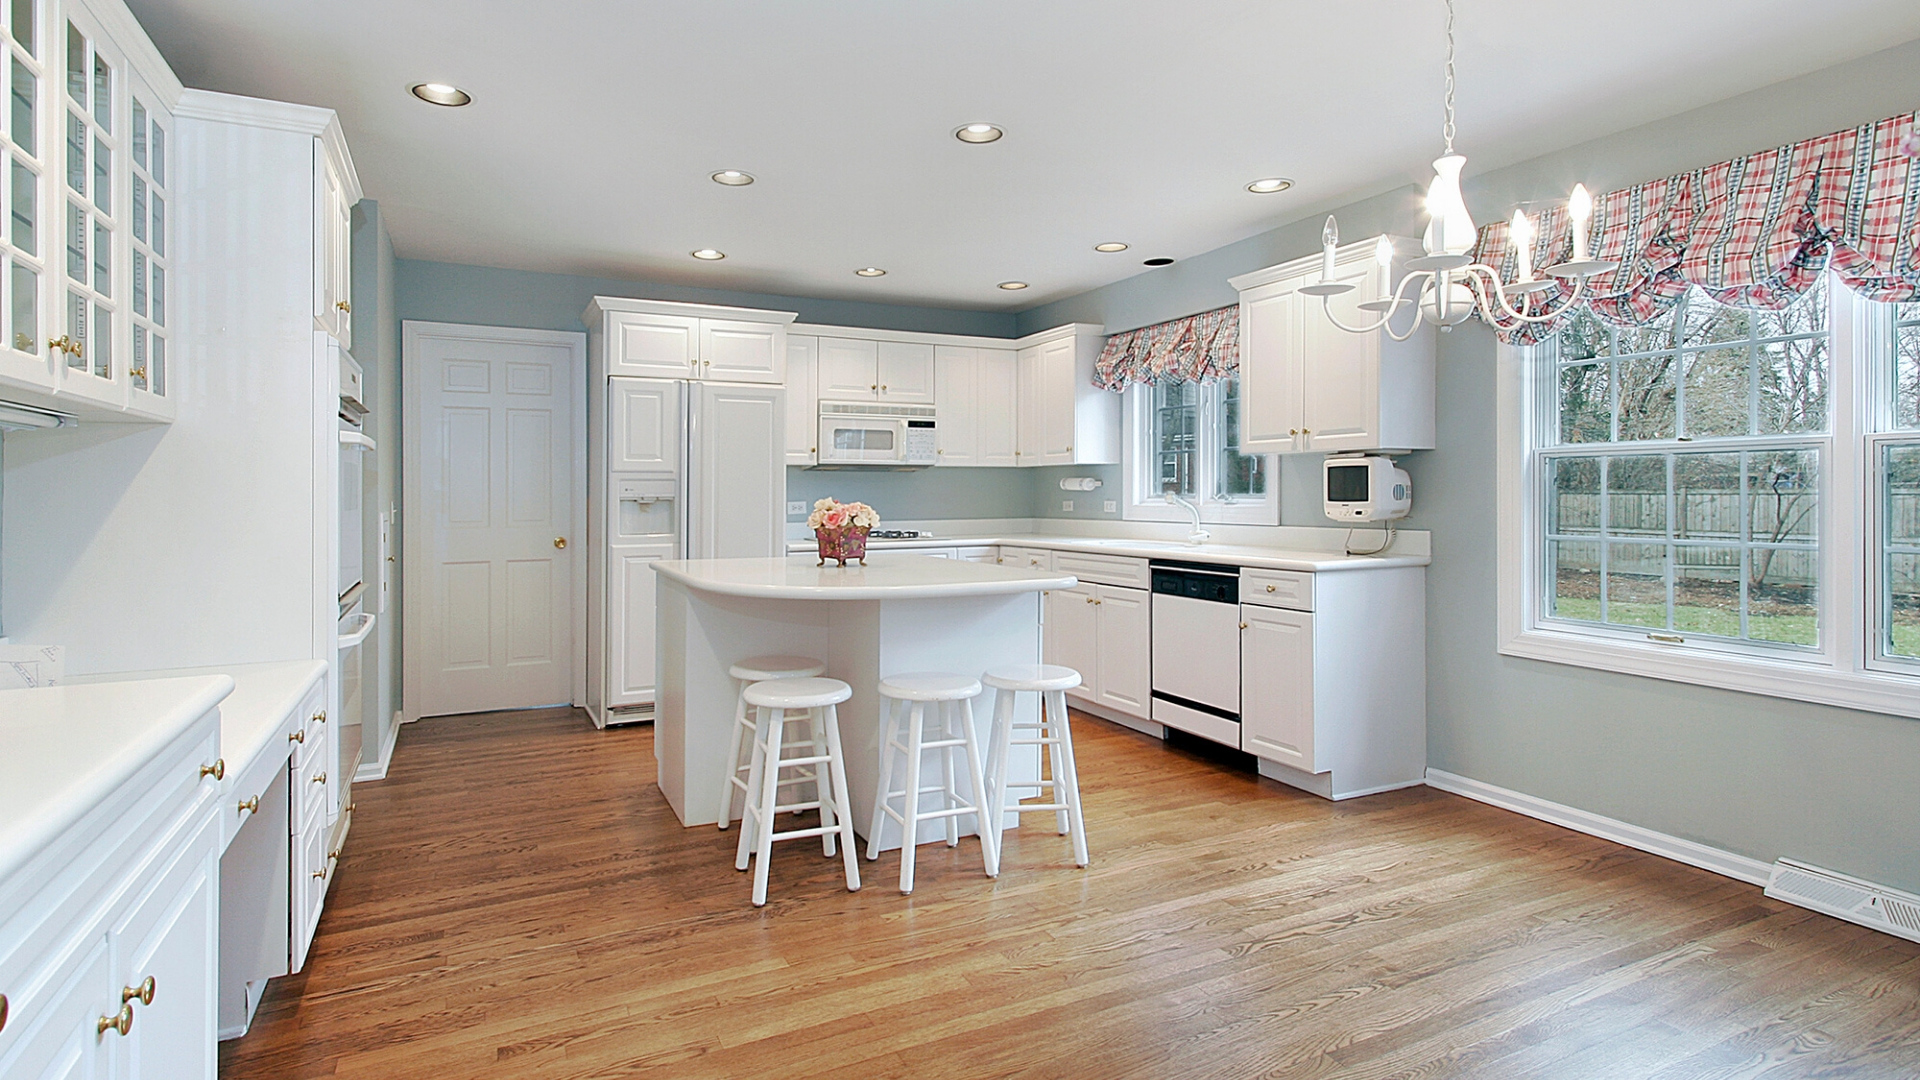 soffits in kitchen cabinets